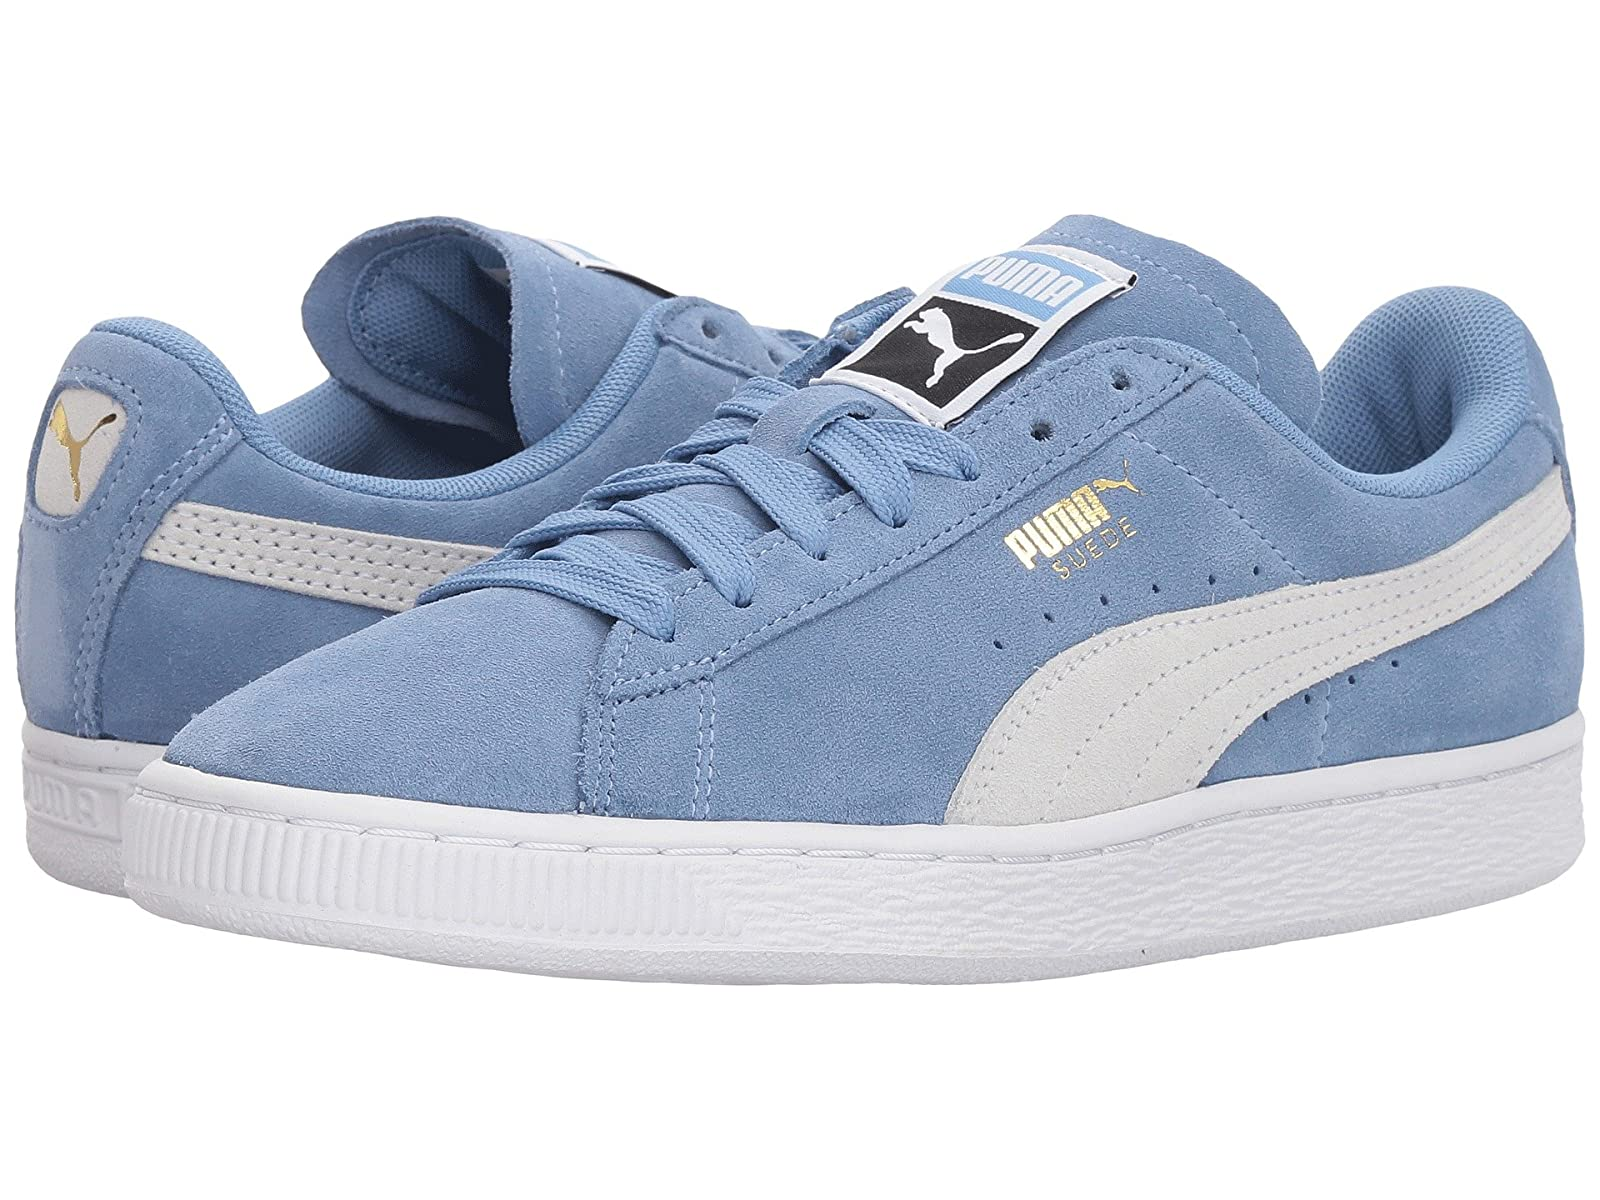 PUMA Suede ClassicCheap and distinctive eye-catching shoes